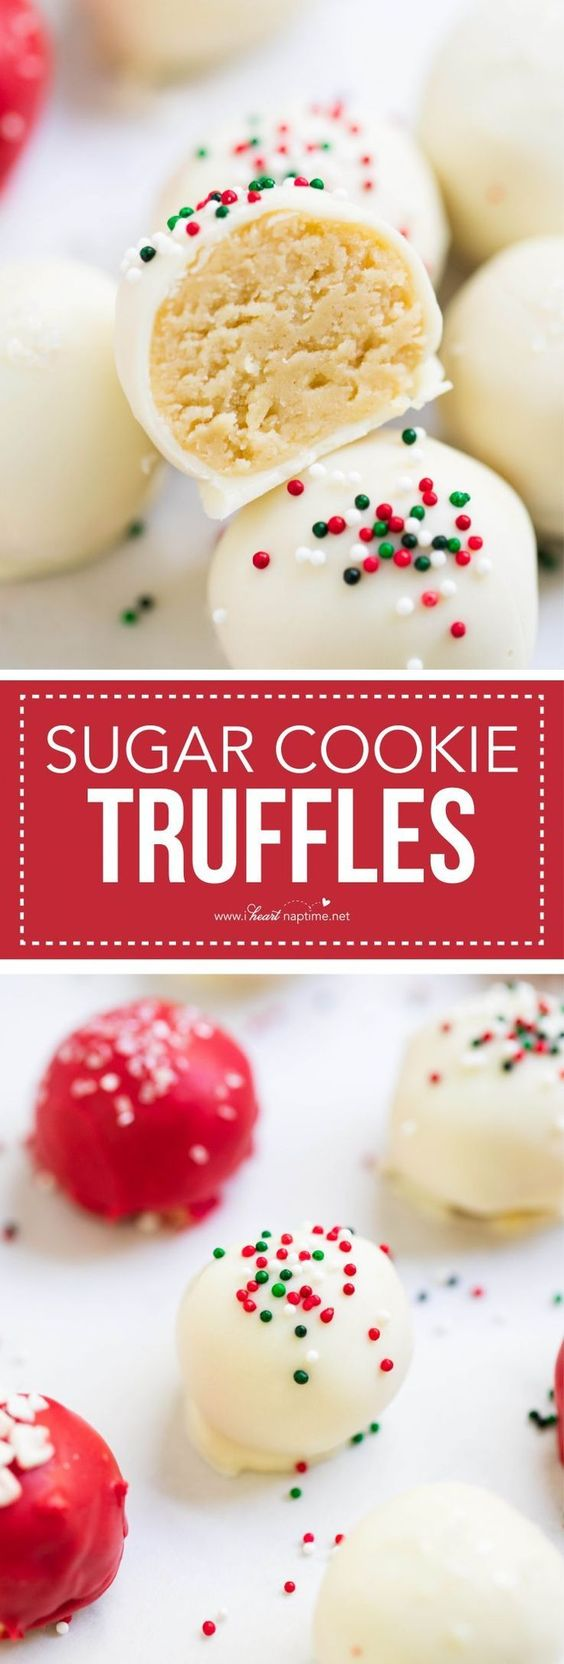 Sugar cookie truffles - I Heart Nap Time